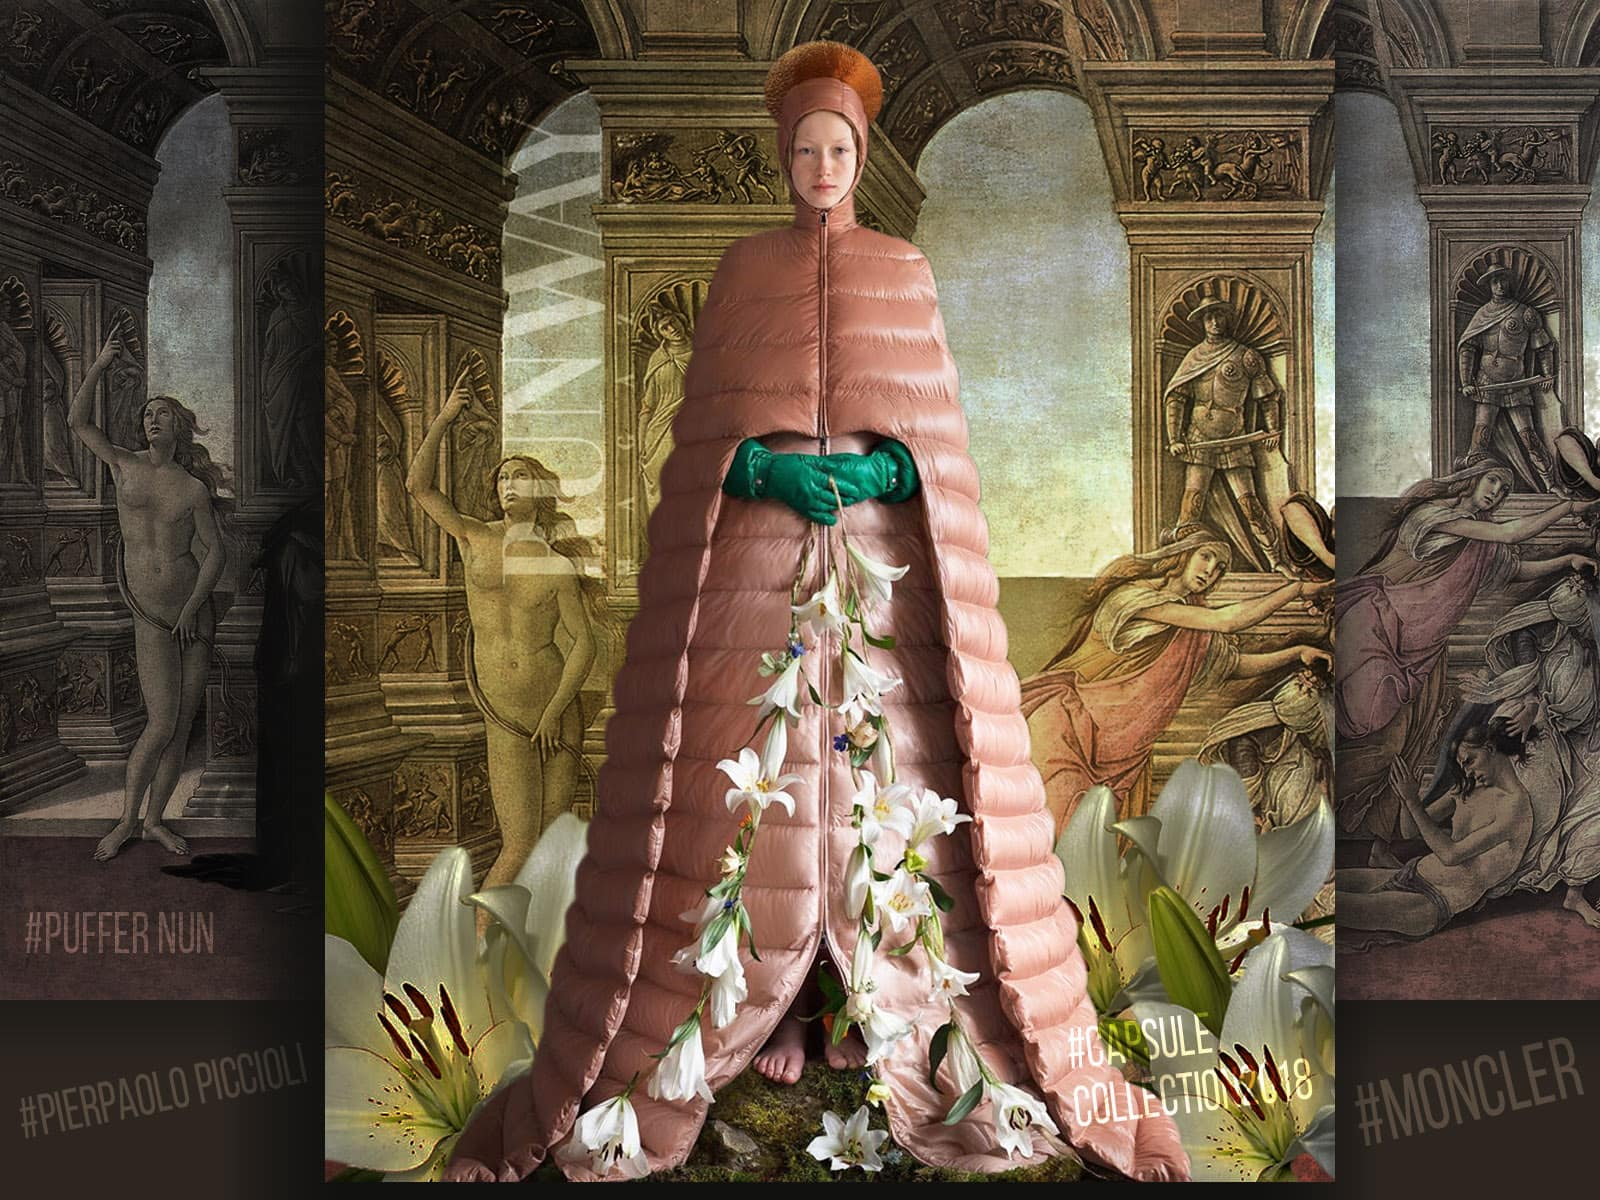 Moncler Puffer Coat Dress Collection 2018 by Pierpaolo Piccioli by Runway Magazine